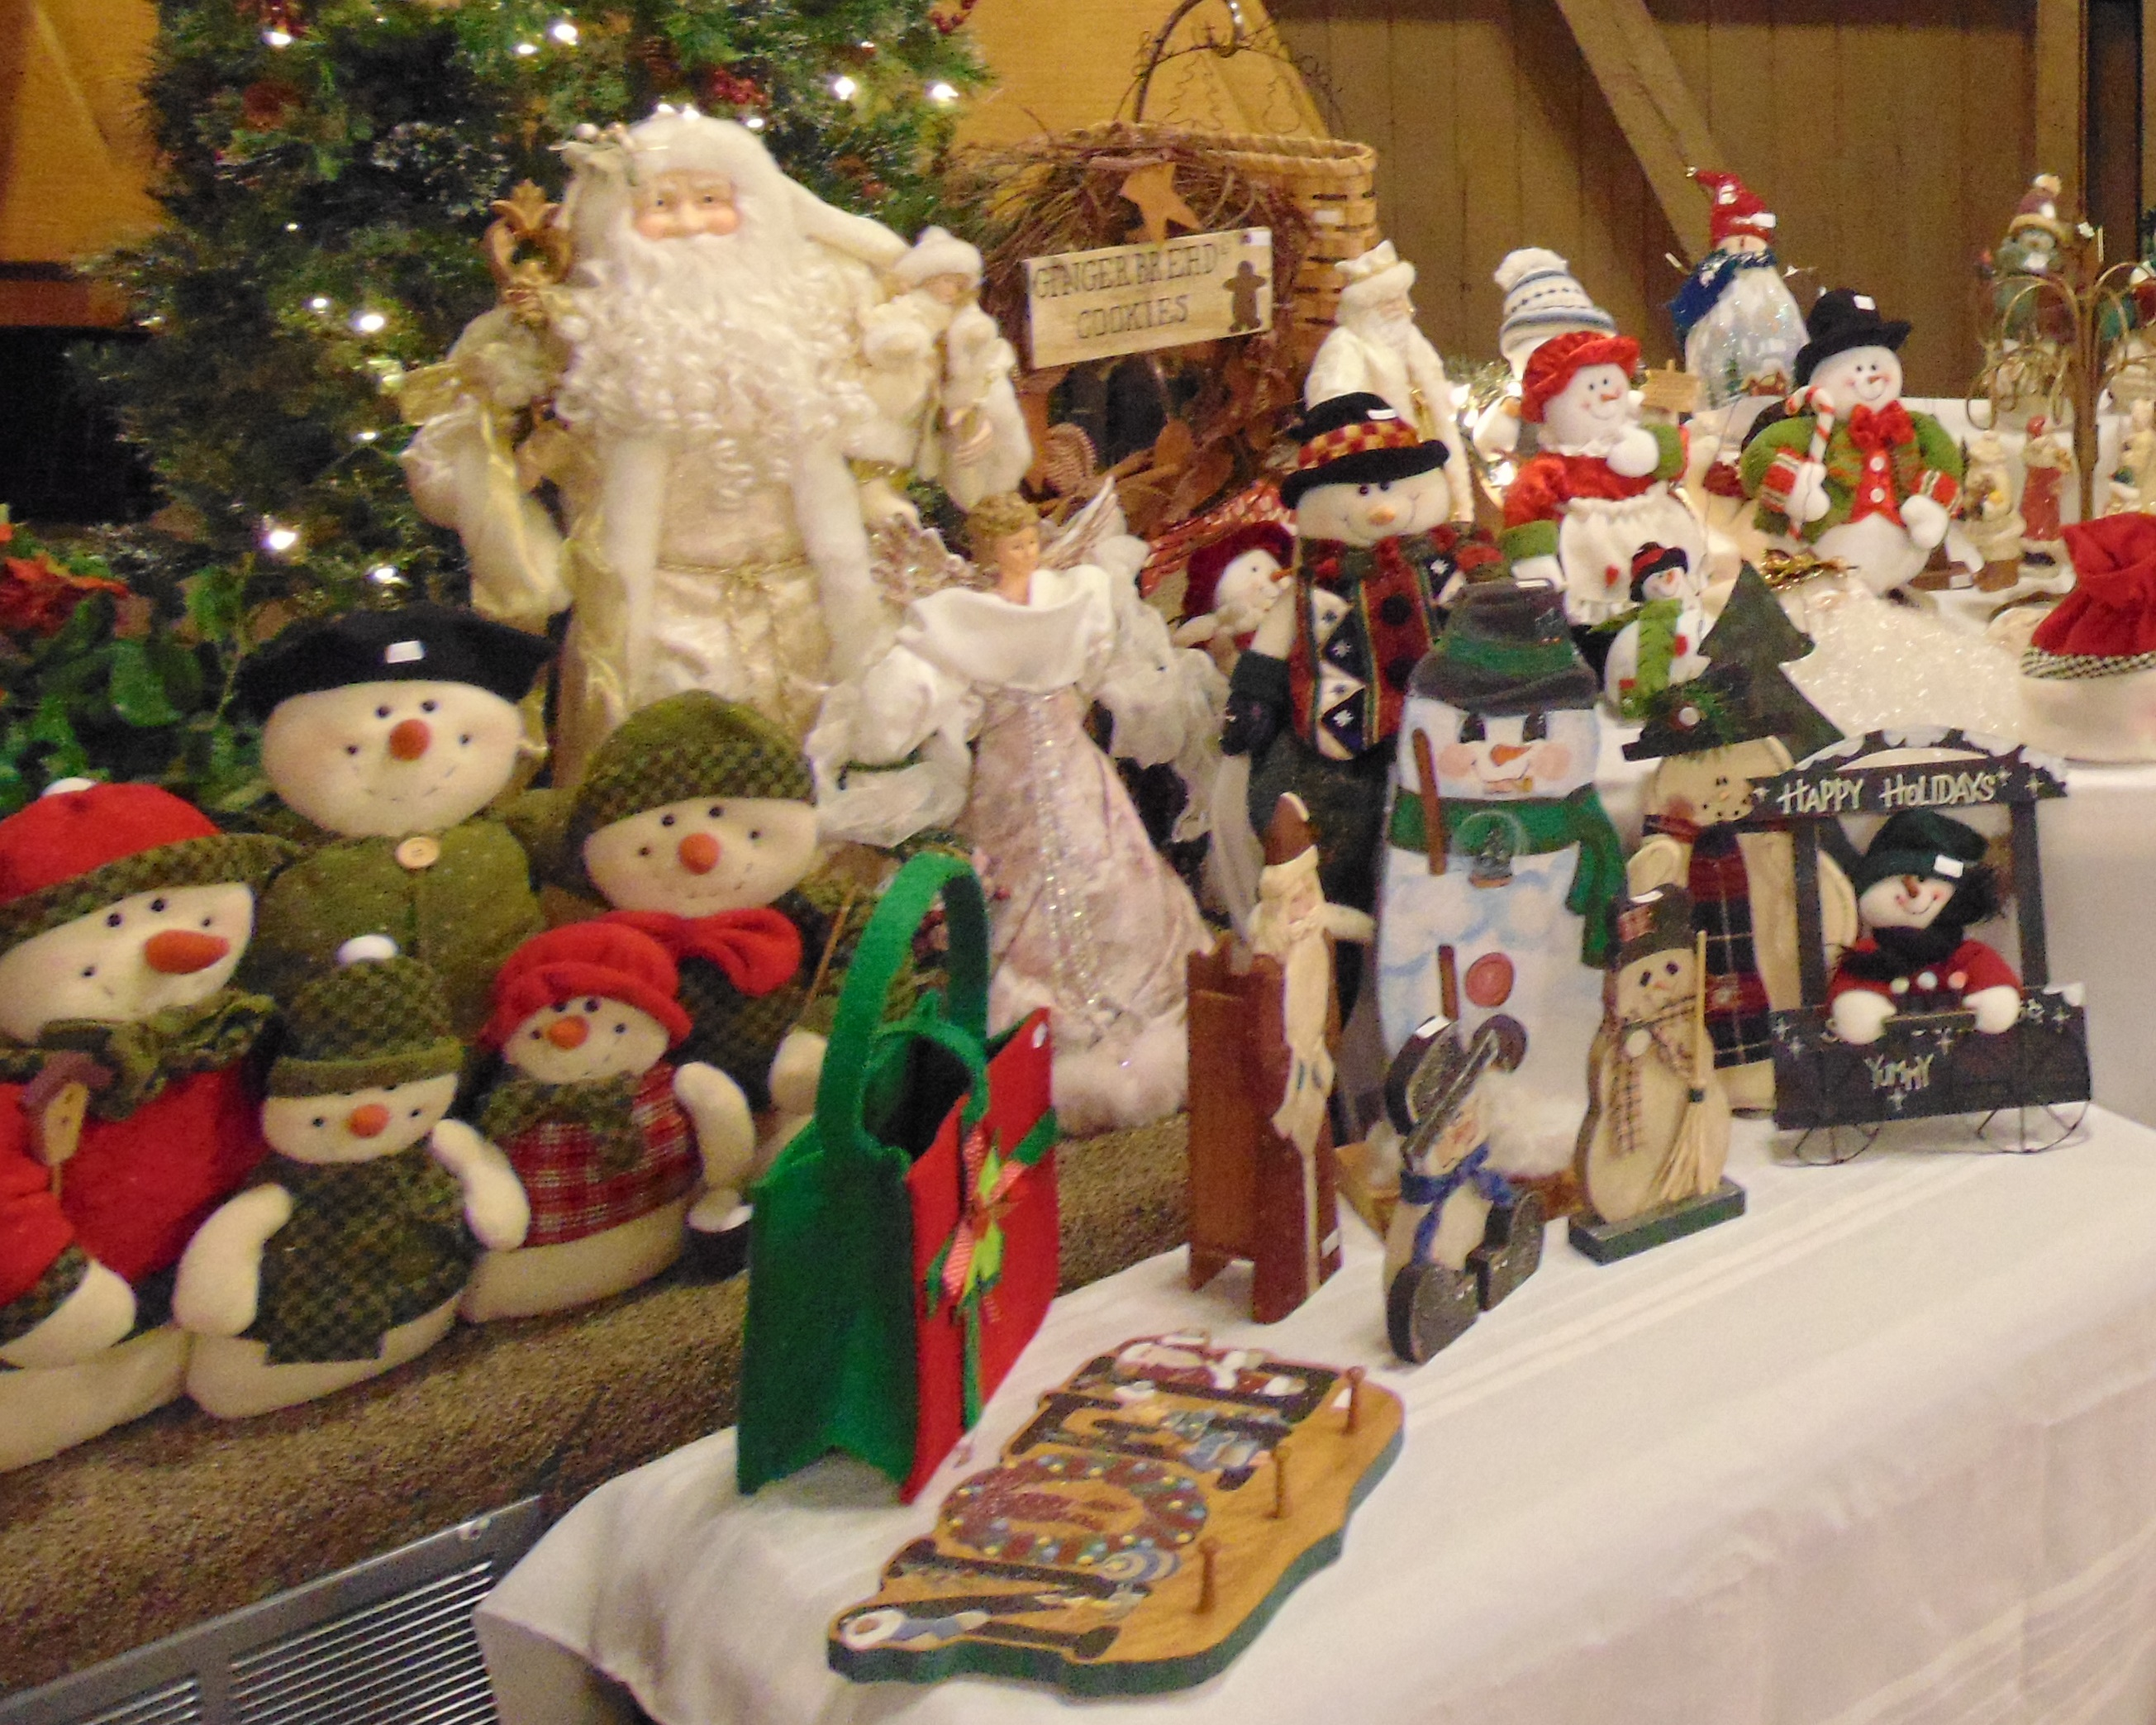 Hawthorn Woods, IL - Official Website - Holiday Craft Fair